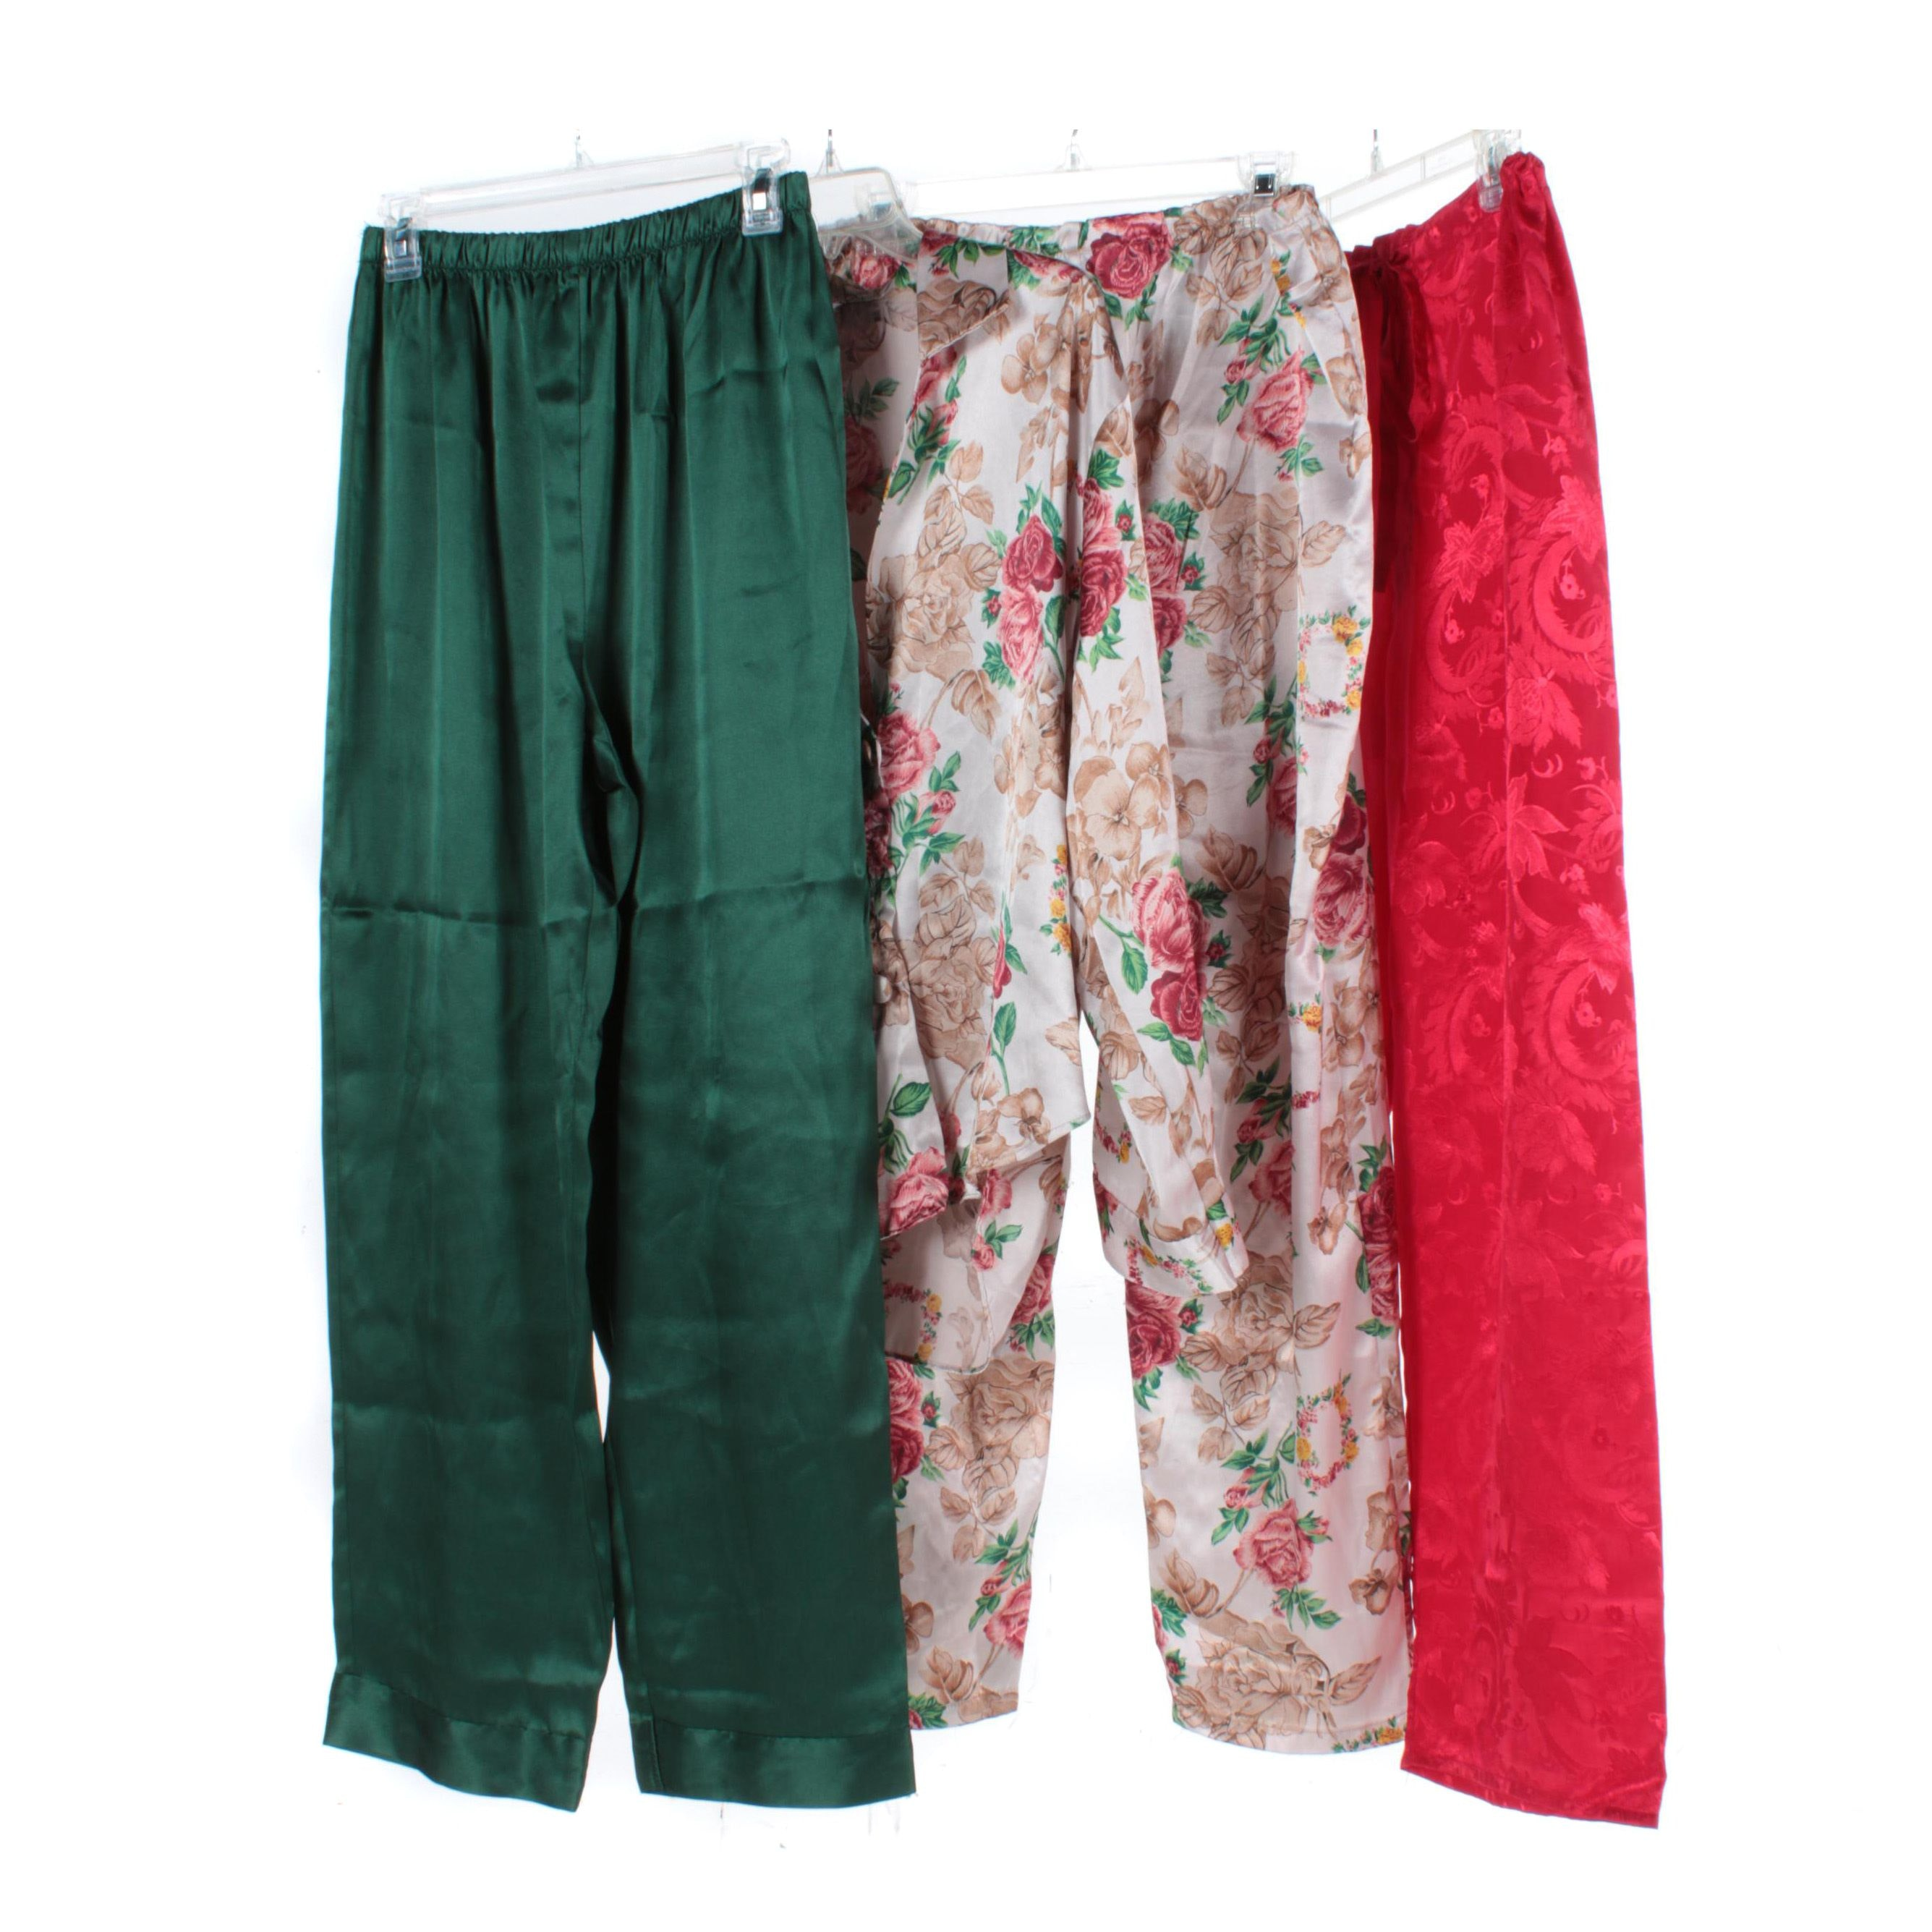 Women's Sleep Pants and Pajamas